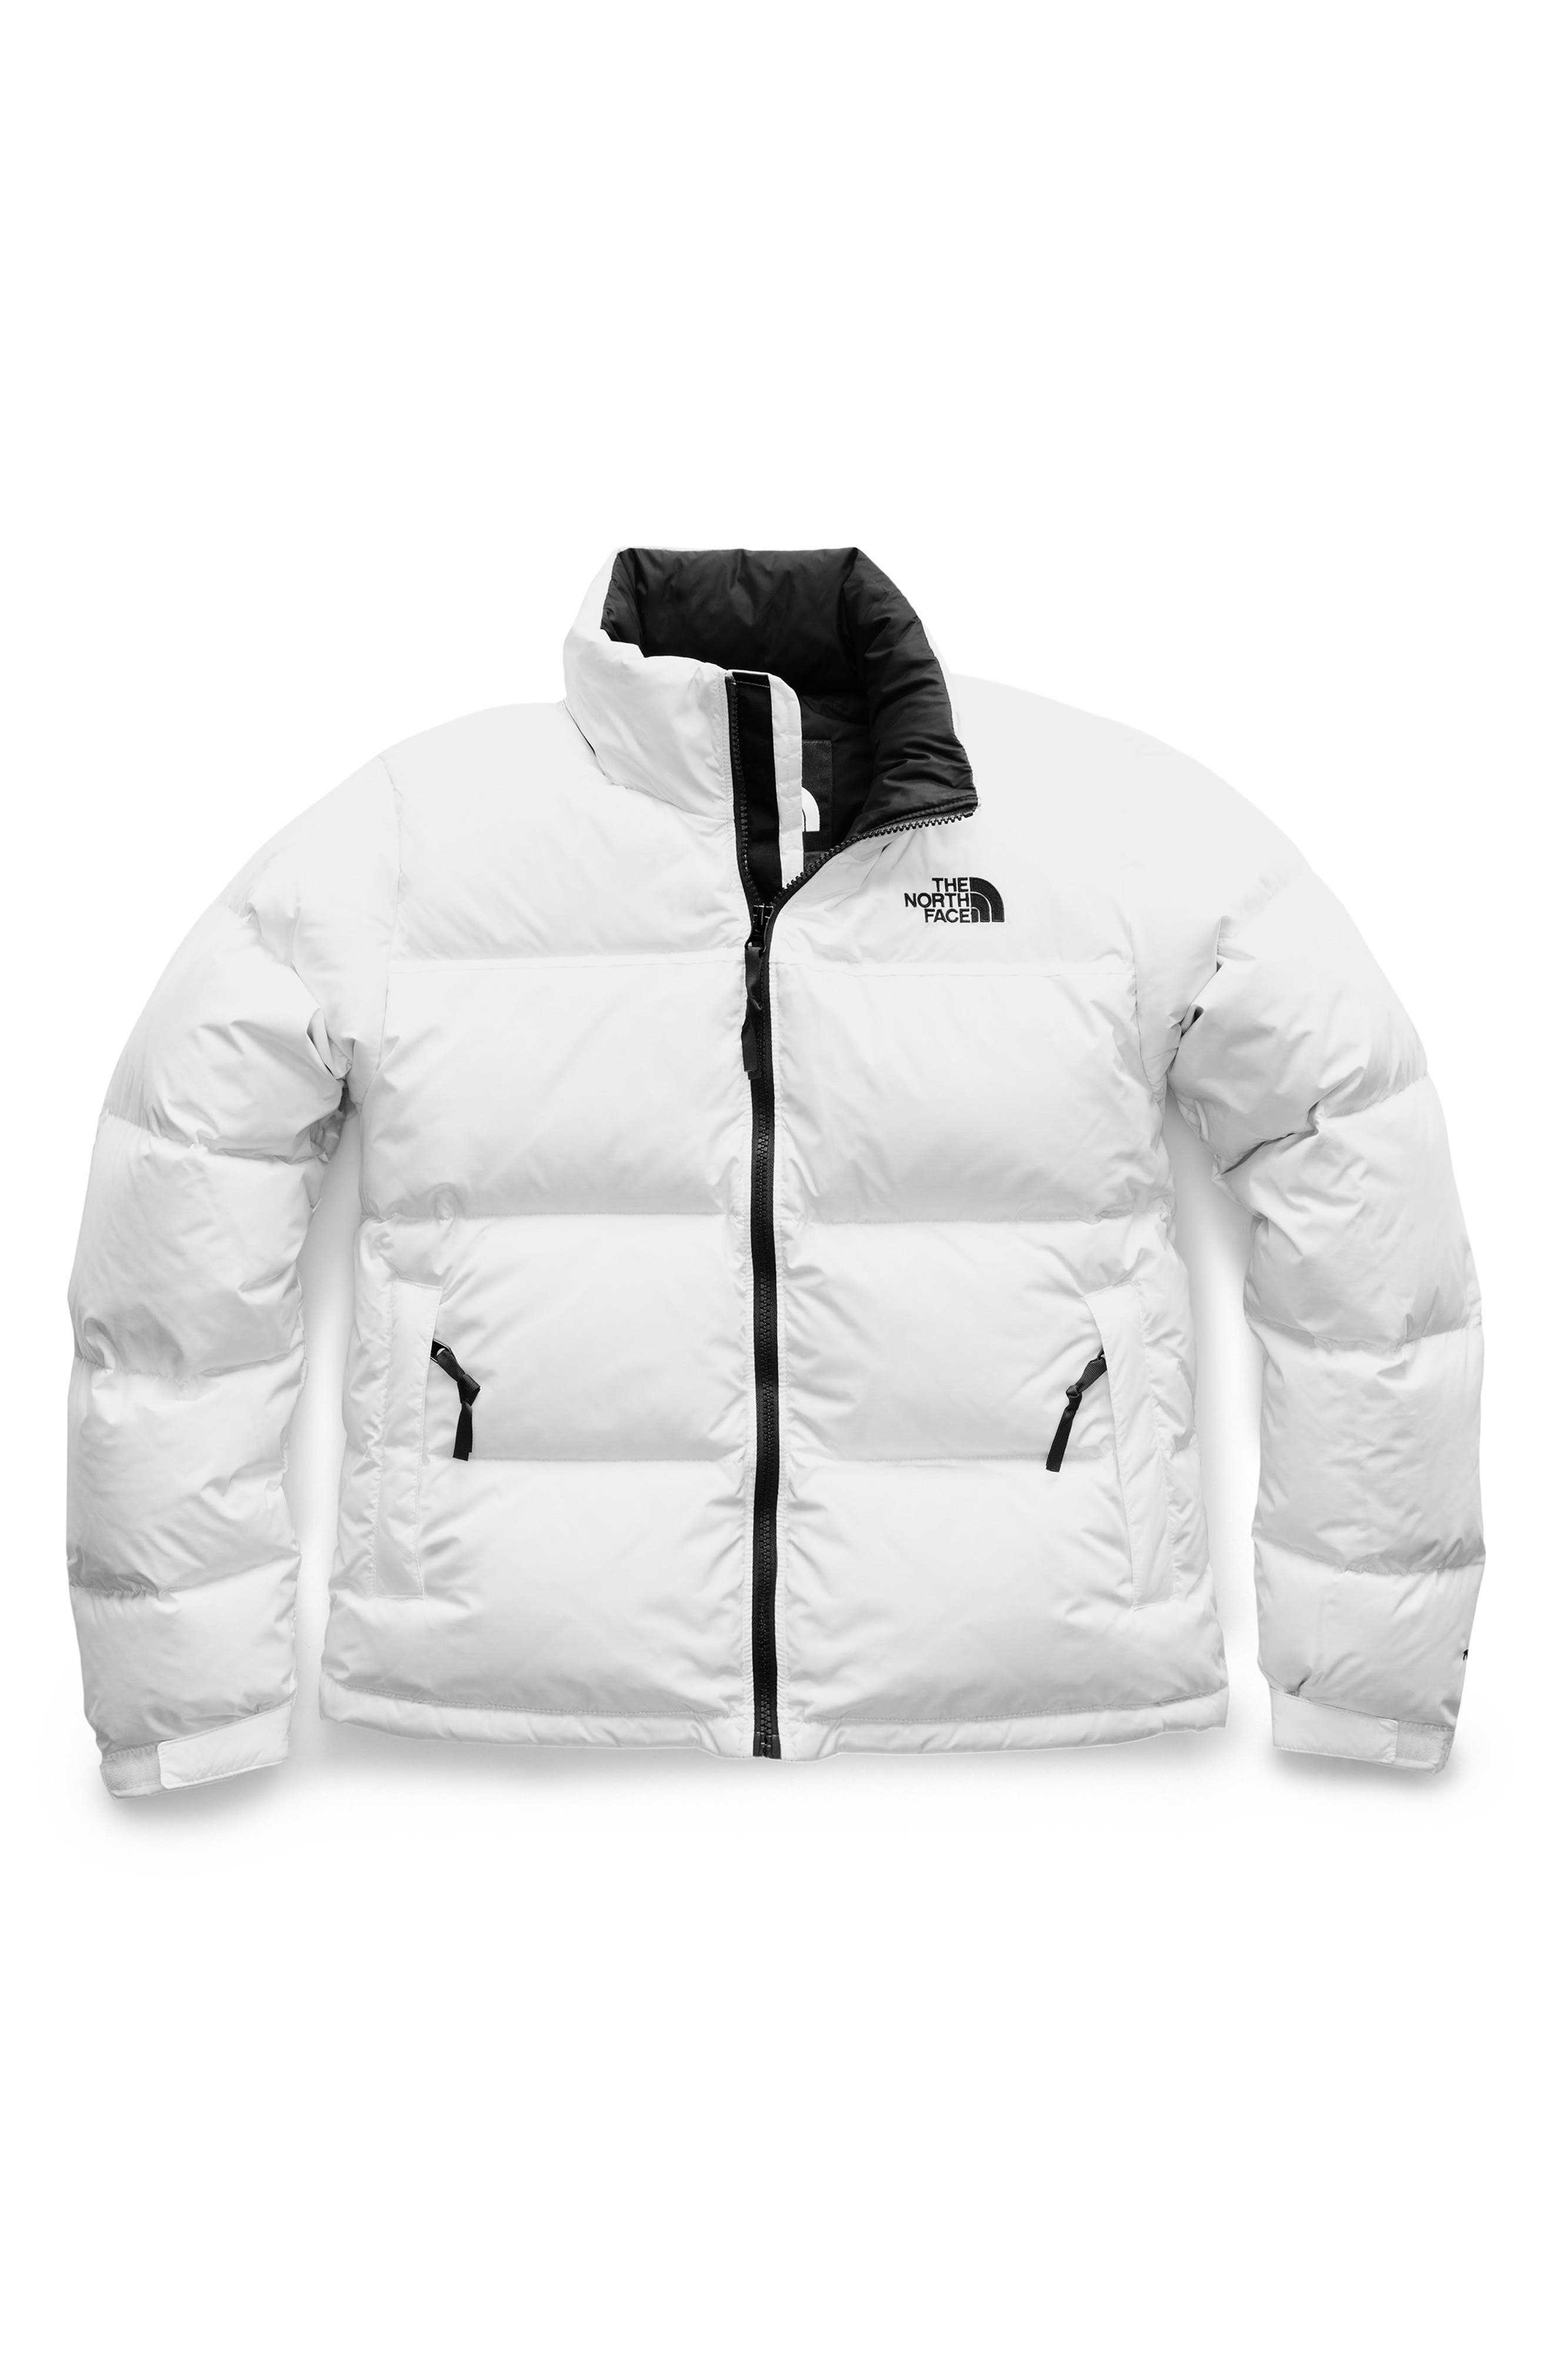 THE NORTH FACE, Nuptse 1996 Packable Quilted Down Jacket, Alternate thumbnail 5, color, TNF WHITE